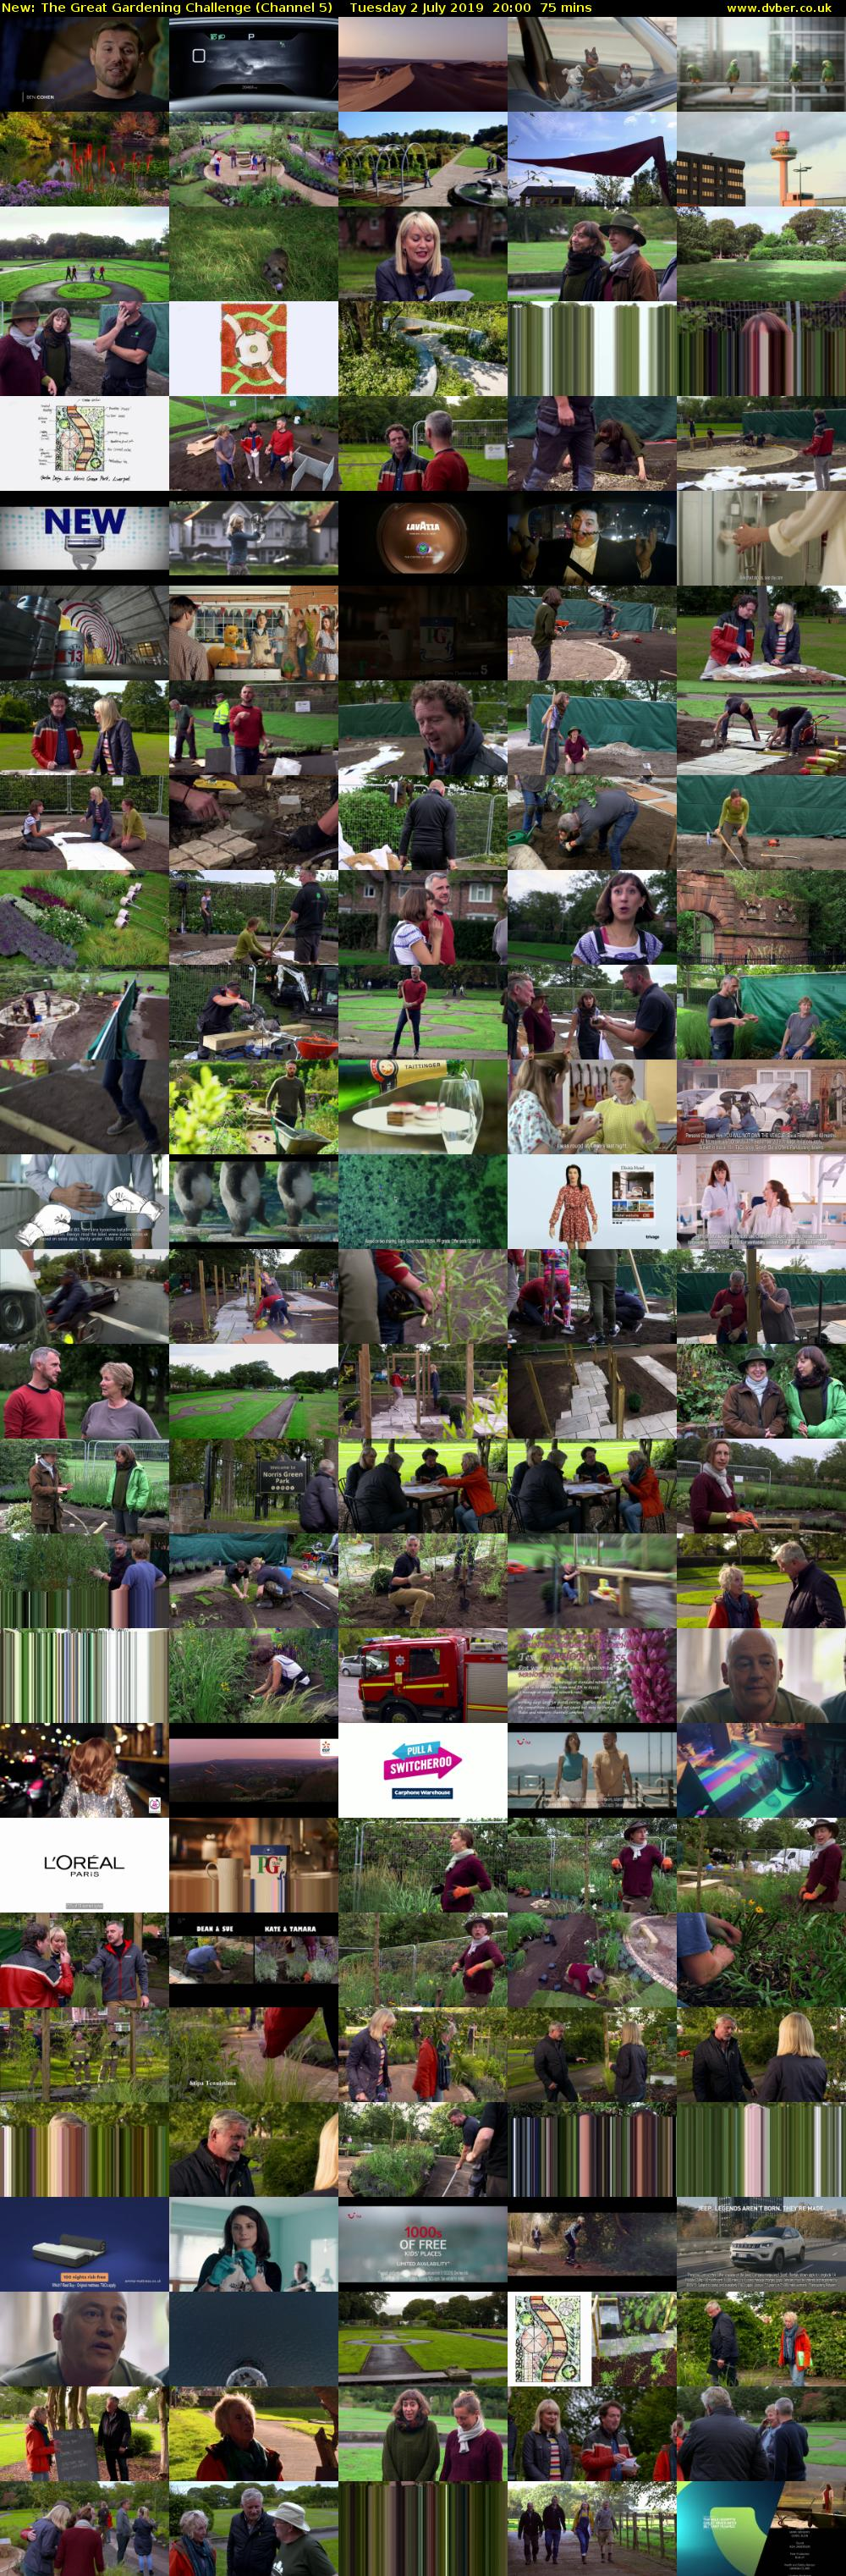 The Great Gardening Challenge (Channel 5) Tuesday 2 July 2019 20:00 - 21:15